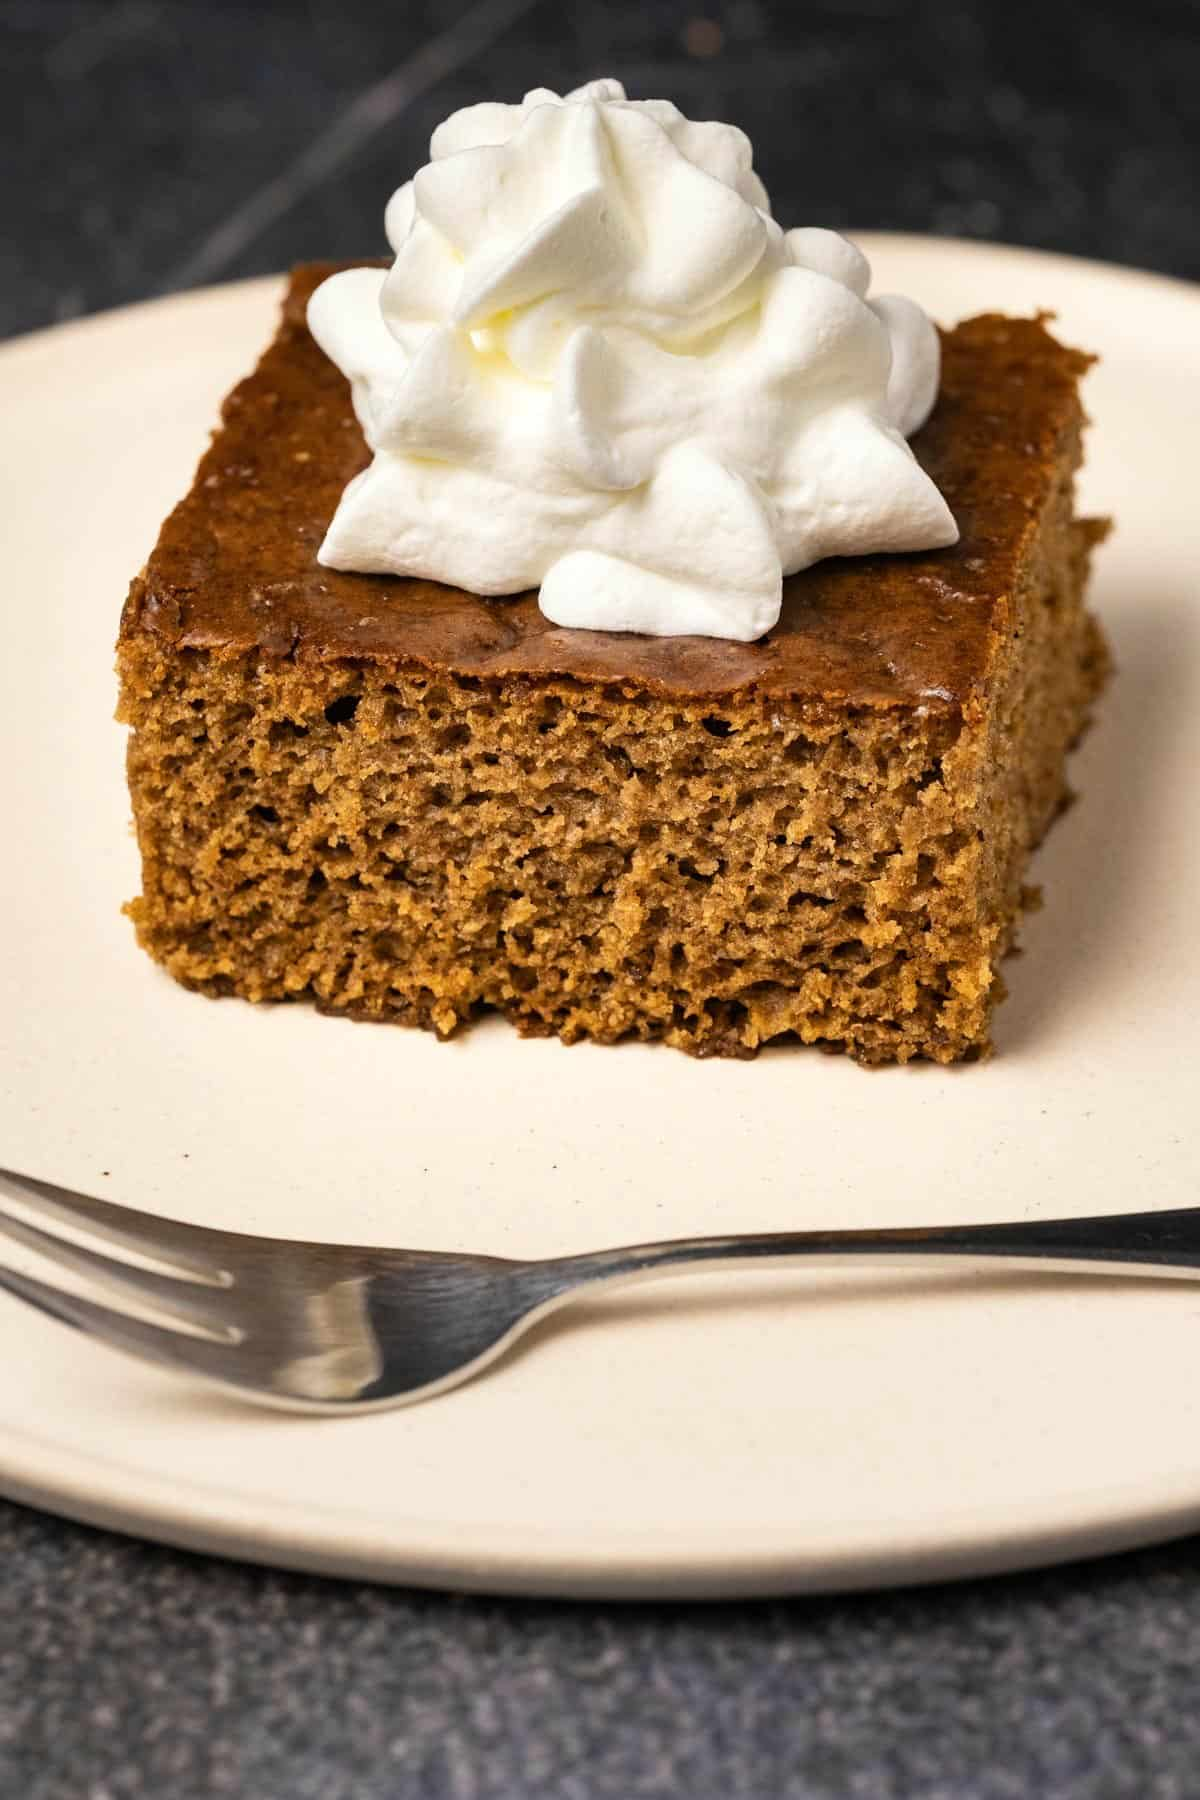 Slice of gingerbread cake with whipped cream, on a white plate with a cake fork.